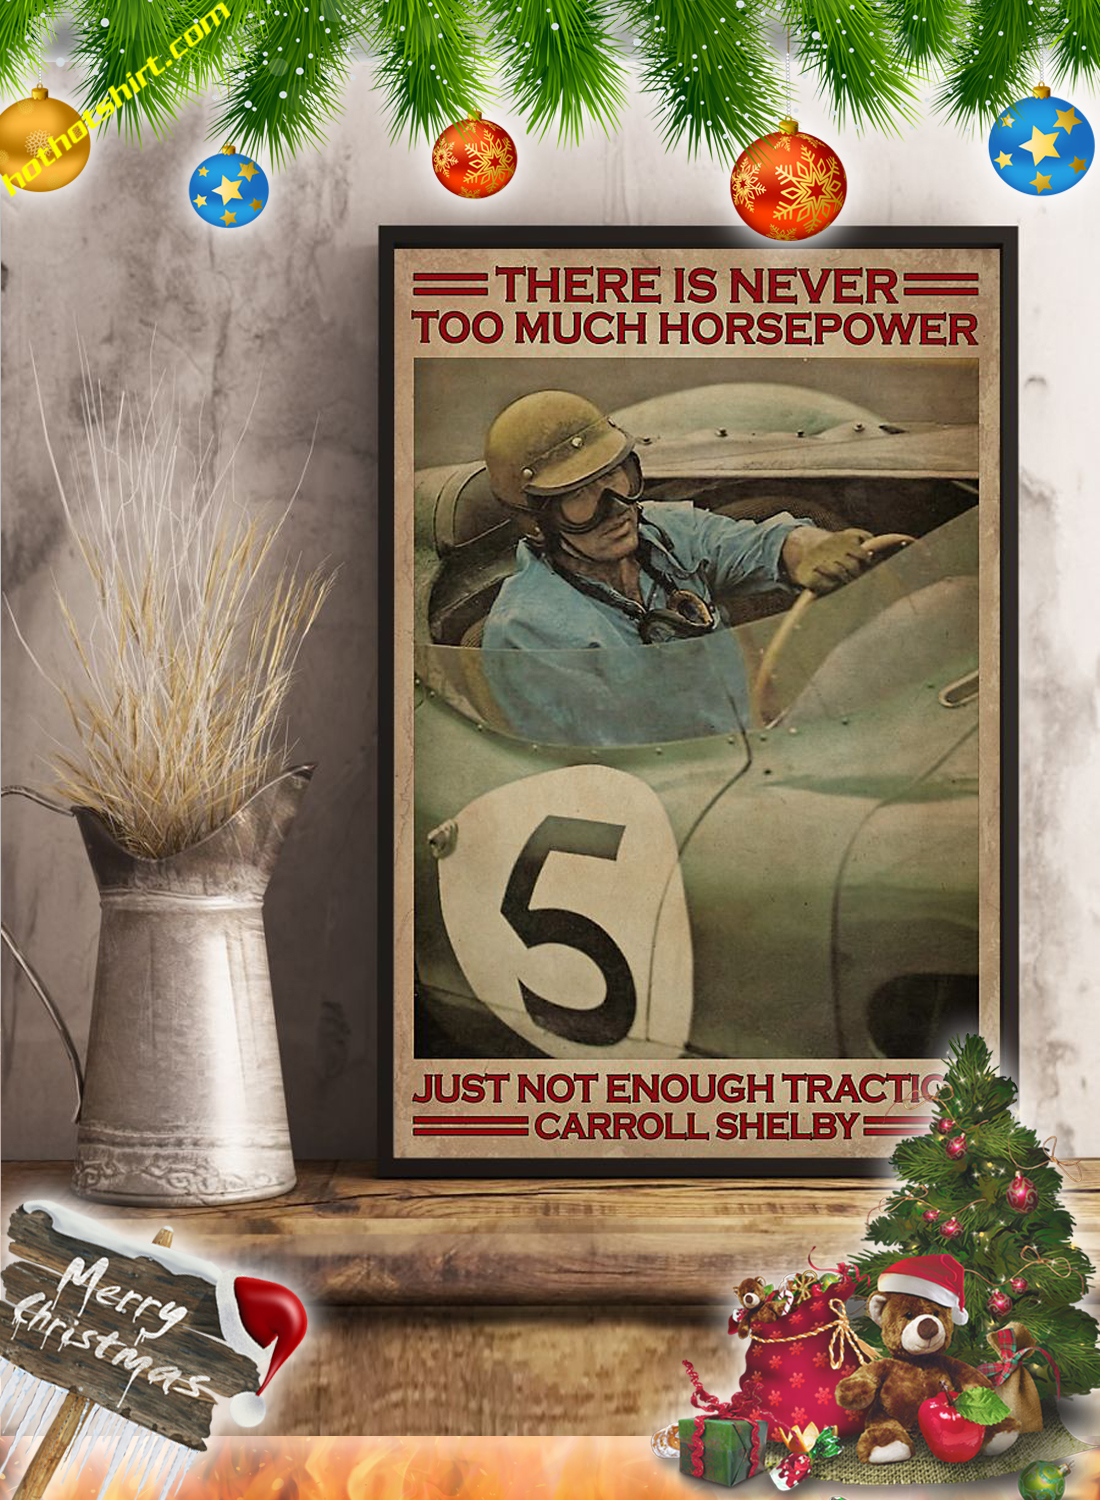 Racing There is never too much horsepower poster 3